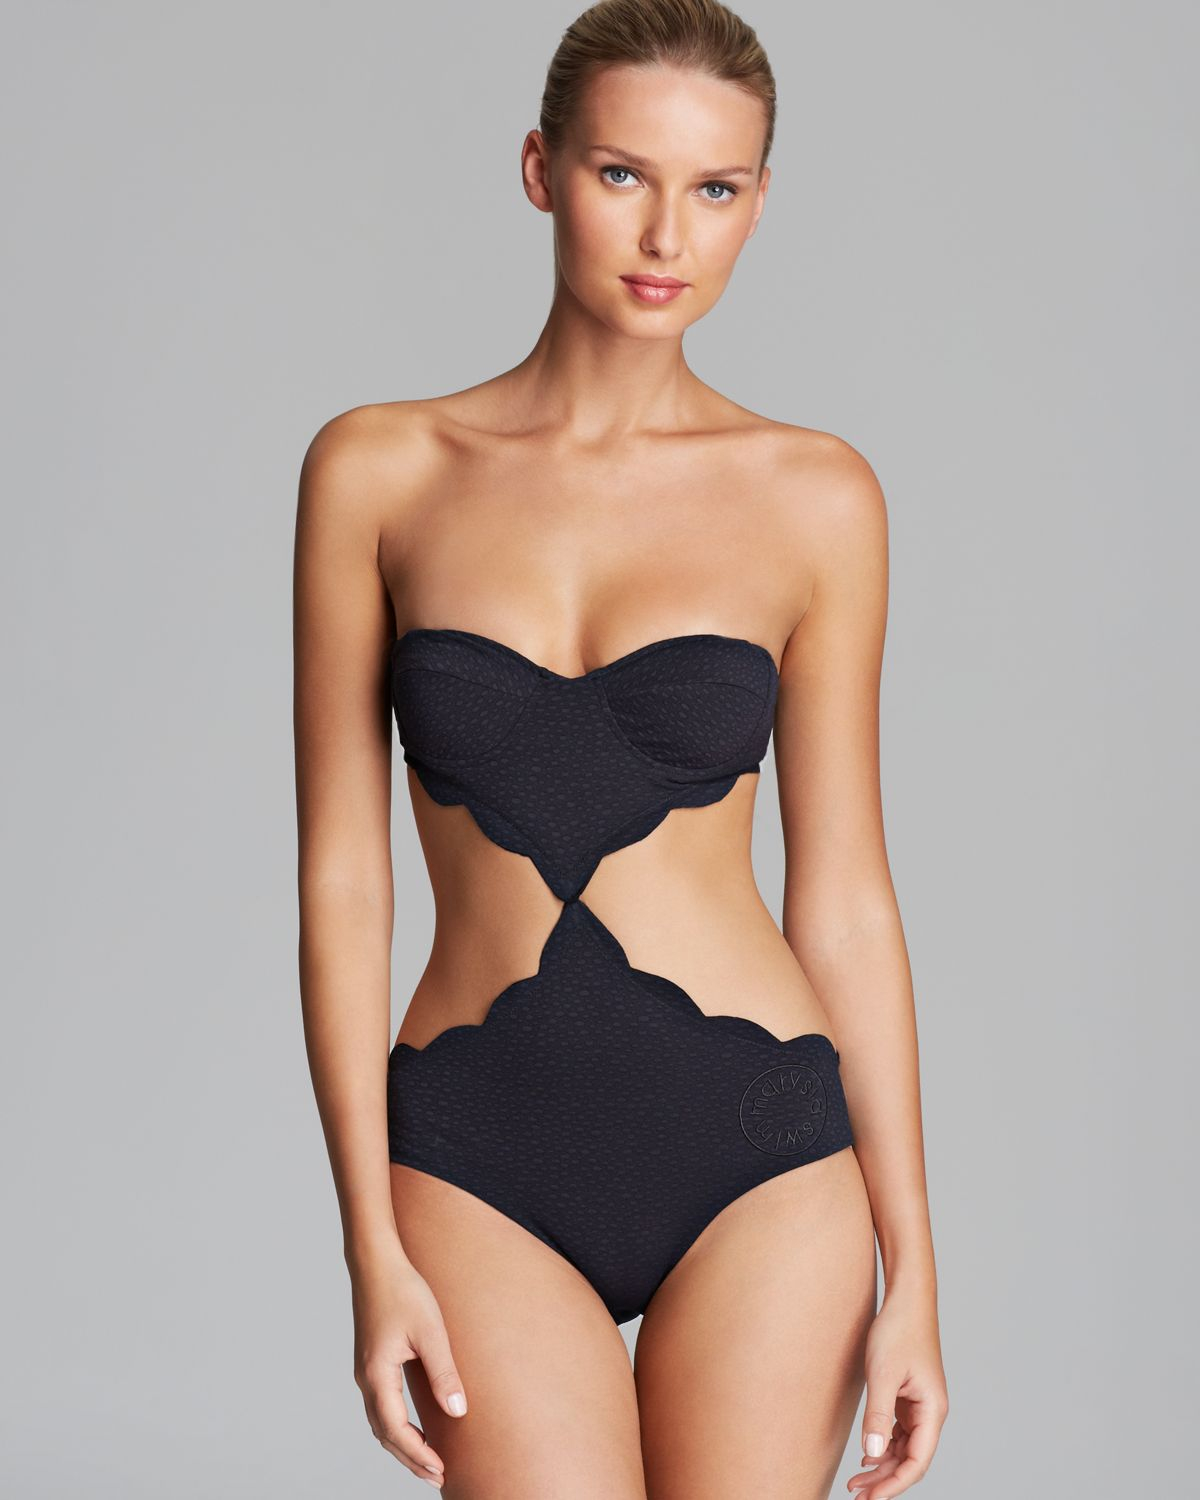 5a0acfe305db1 Summary -> Kandinsky Cut Out Underwire One Piece Swimsuit Swimsuits